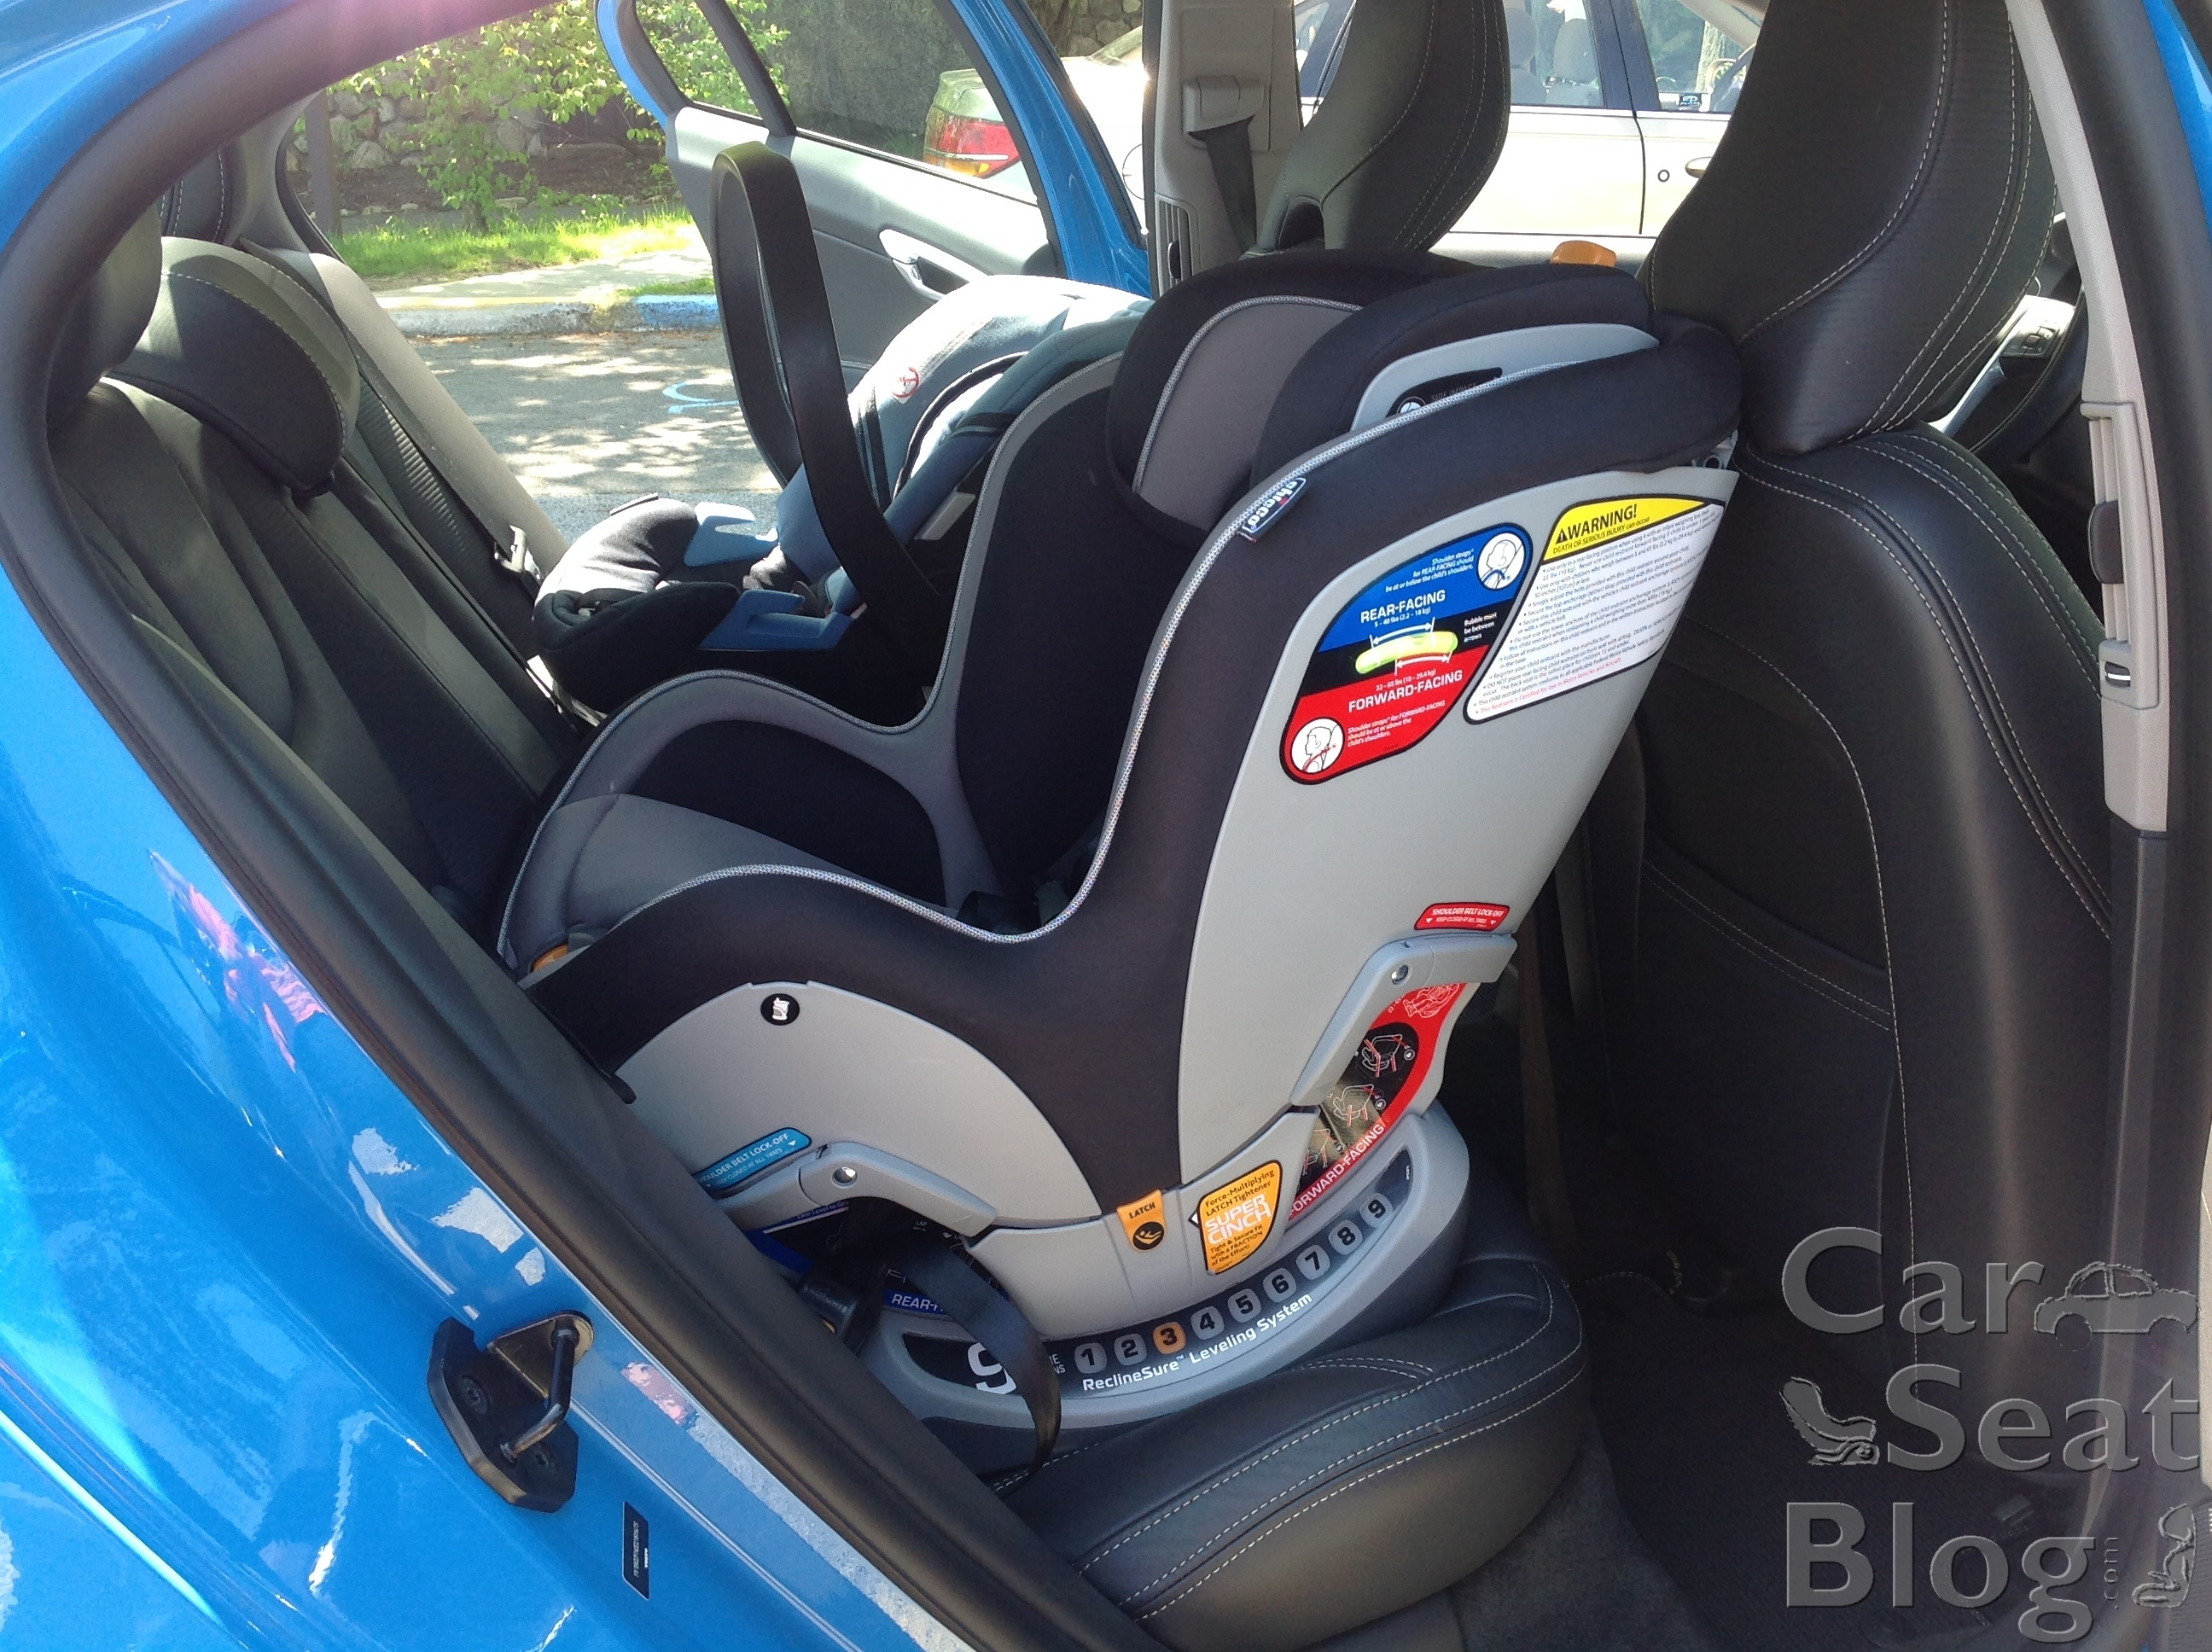 Kia Optima: Installing a child restraint on a front passenger's seat is forbidden